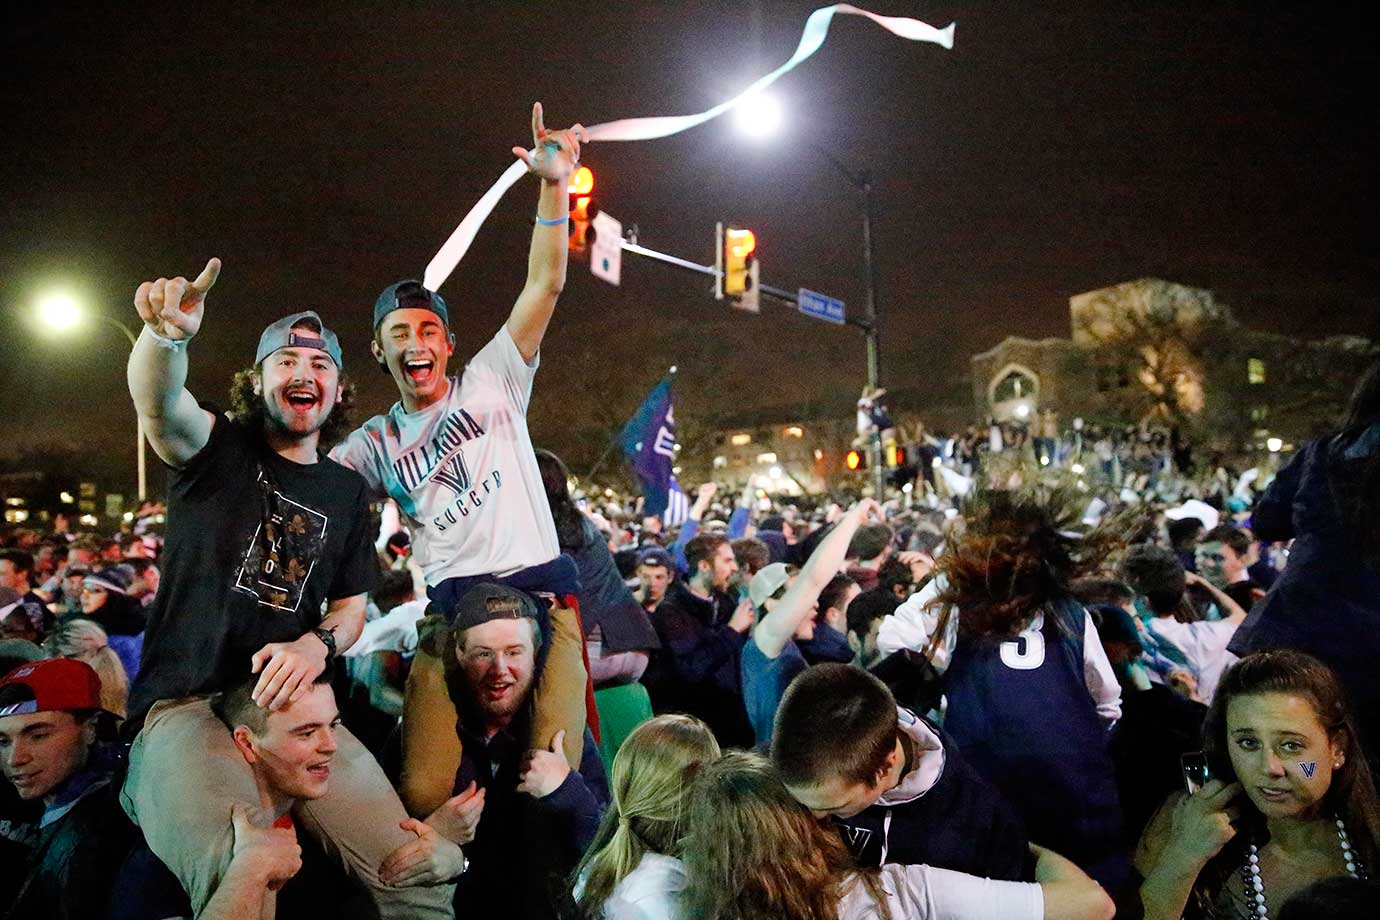 Fans celebrate in Villanova, Pa., after the Wildcats defeated North Carolina.